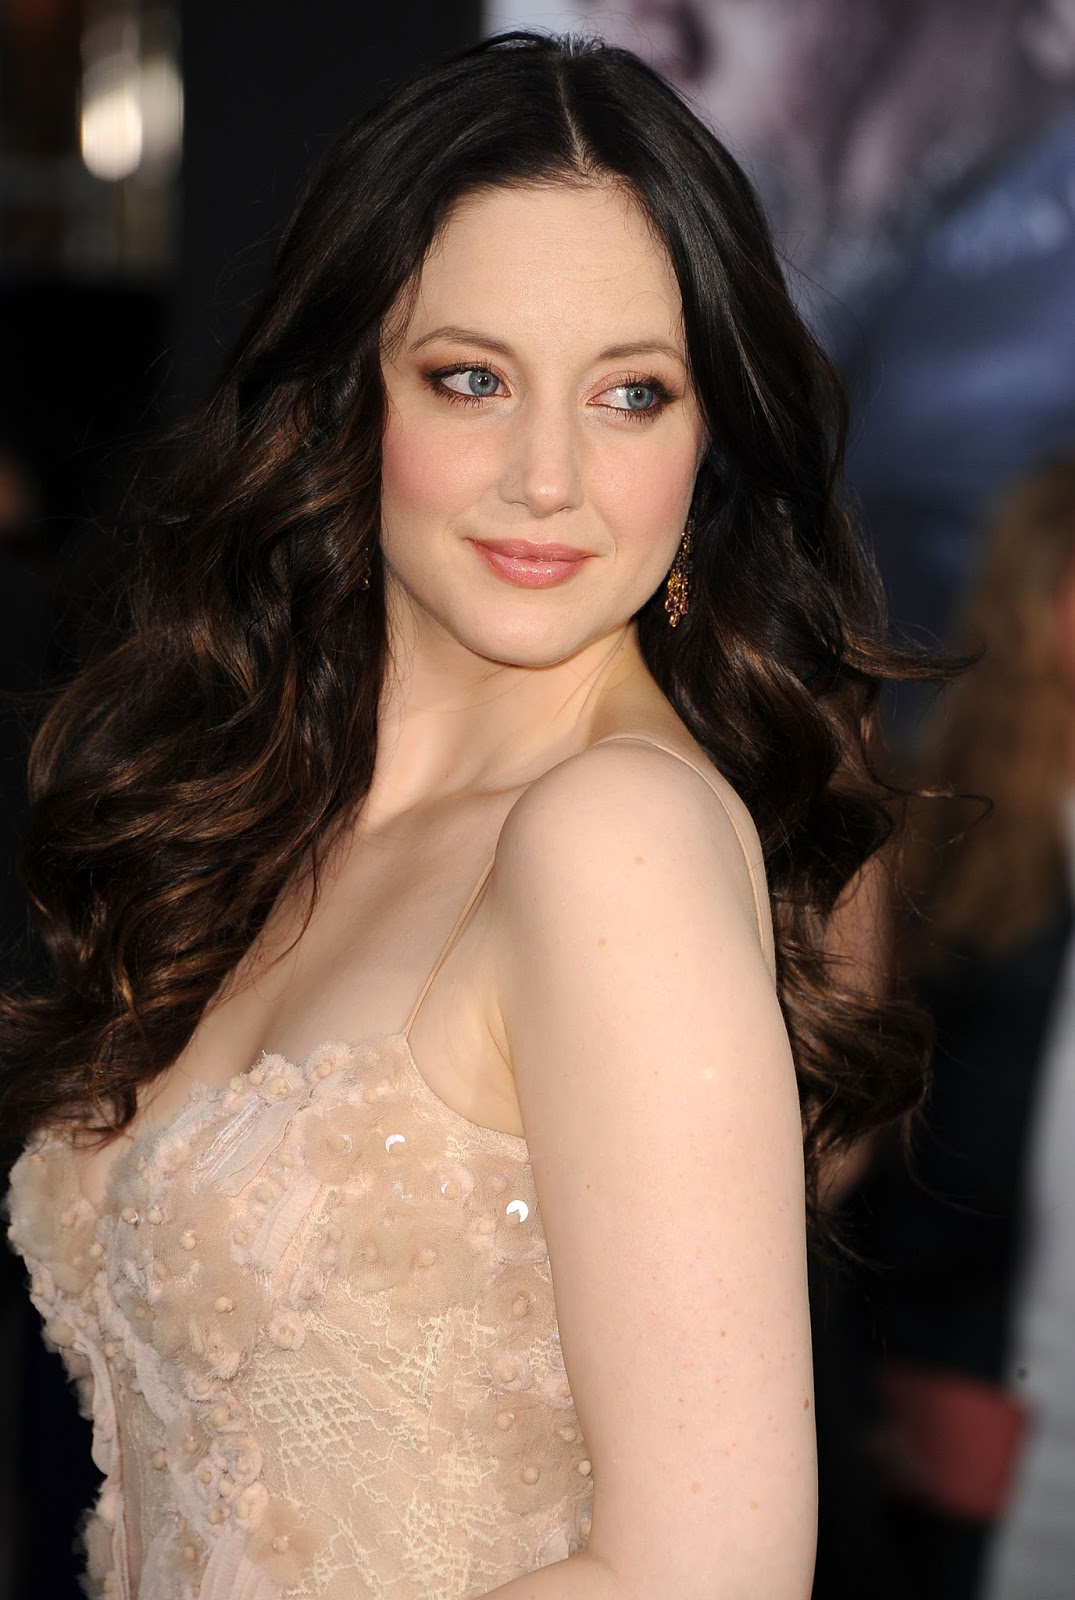 Celebrity Pics Anna Kendrick: CELEBRITY PICS: Andrea Riseborough